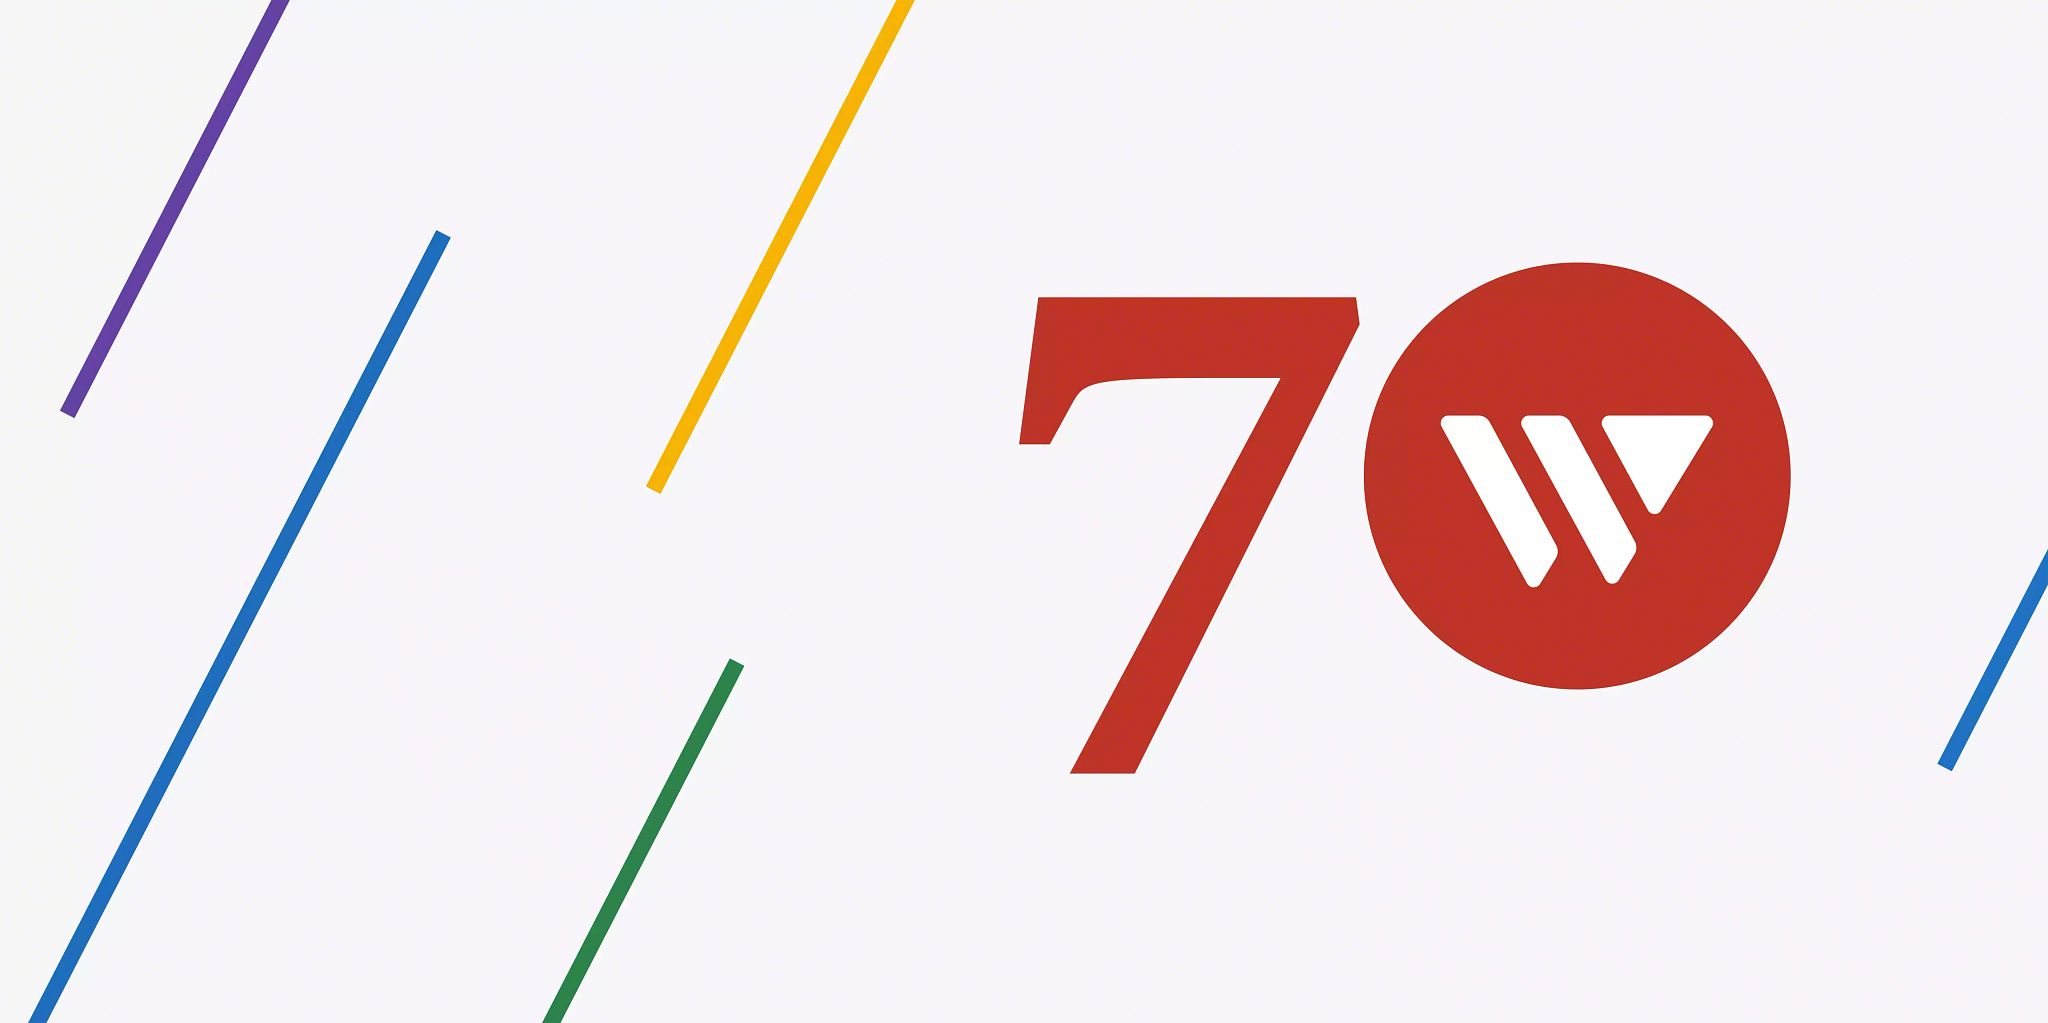 Graphic with a red number 70 on the right side in the middle using the Widen logo as the zero. Colorful lines are aded diagonally on the image but the background is mostly white space.